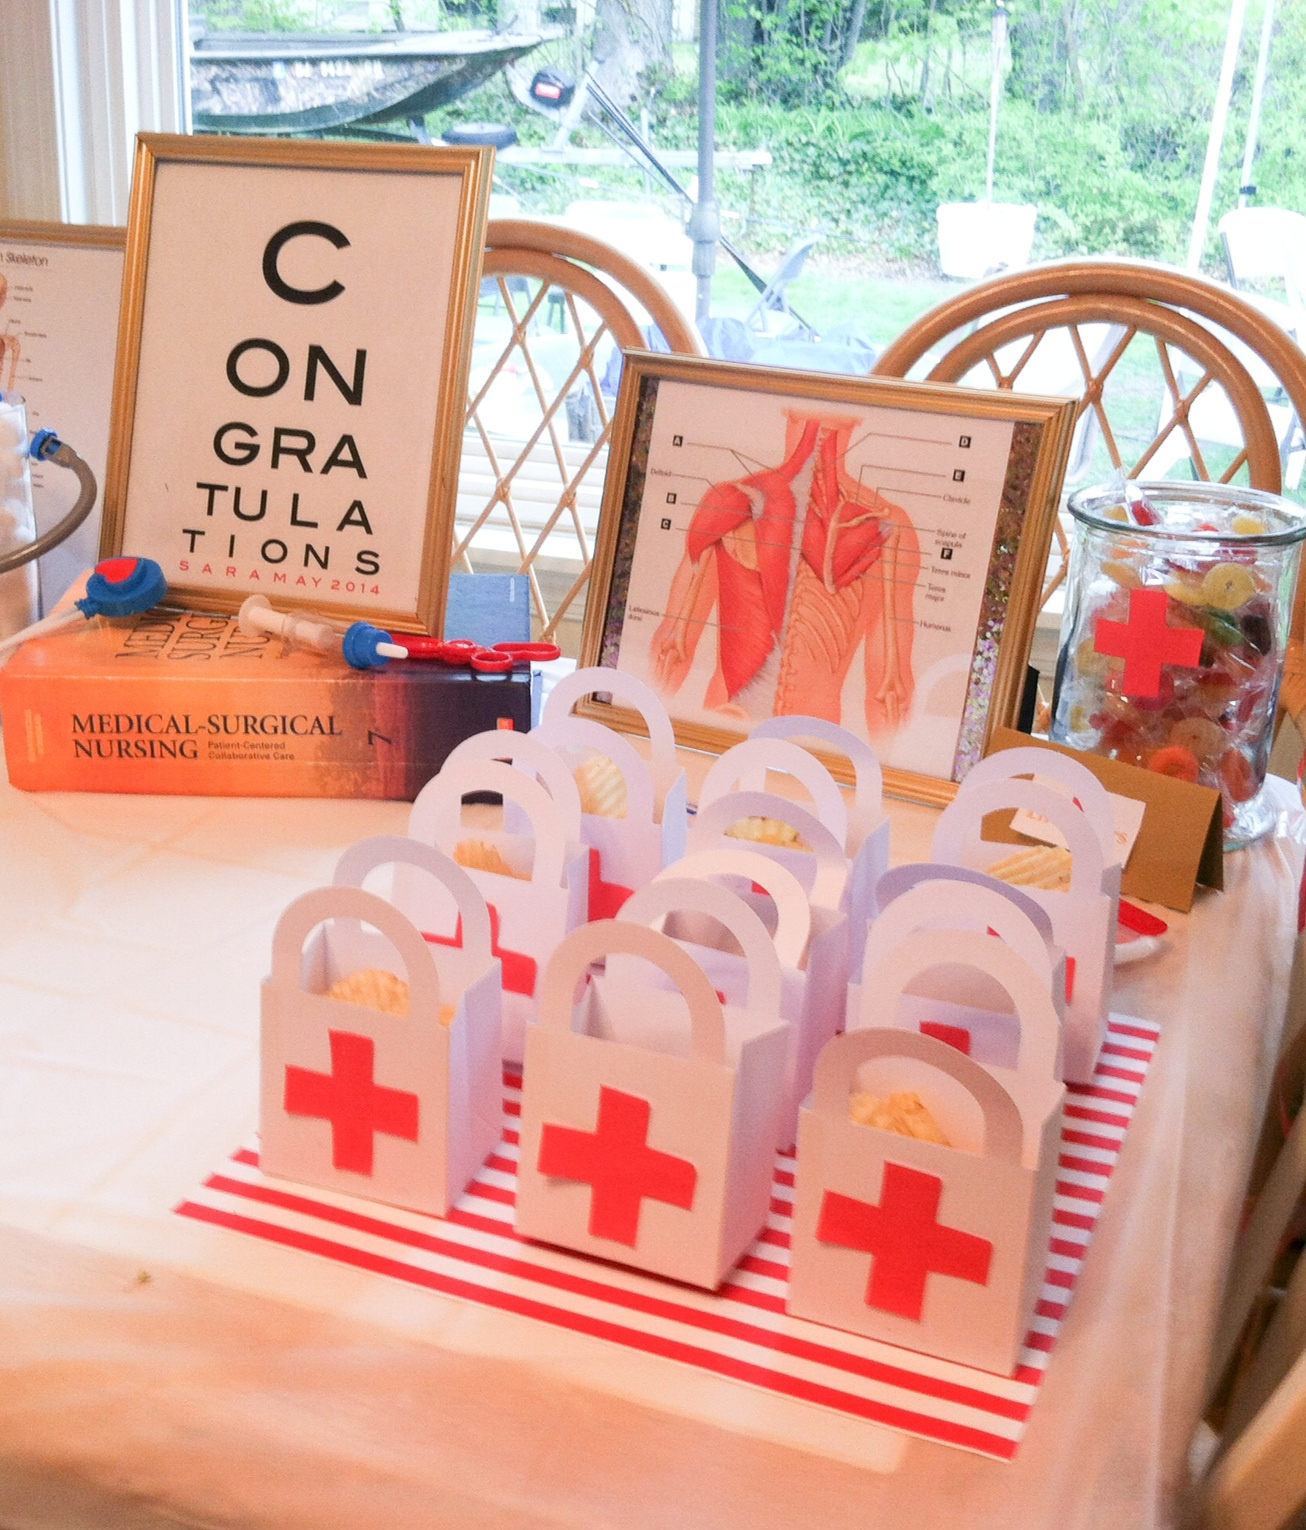 Inspiration for a Nurse/Medical-Themed Party | My Chic Sunday